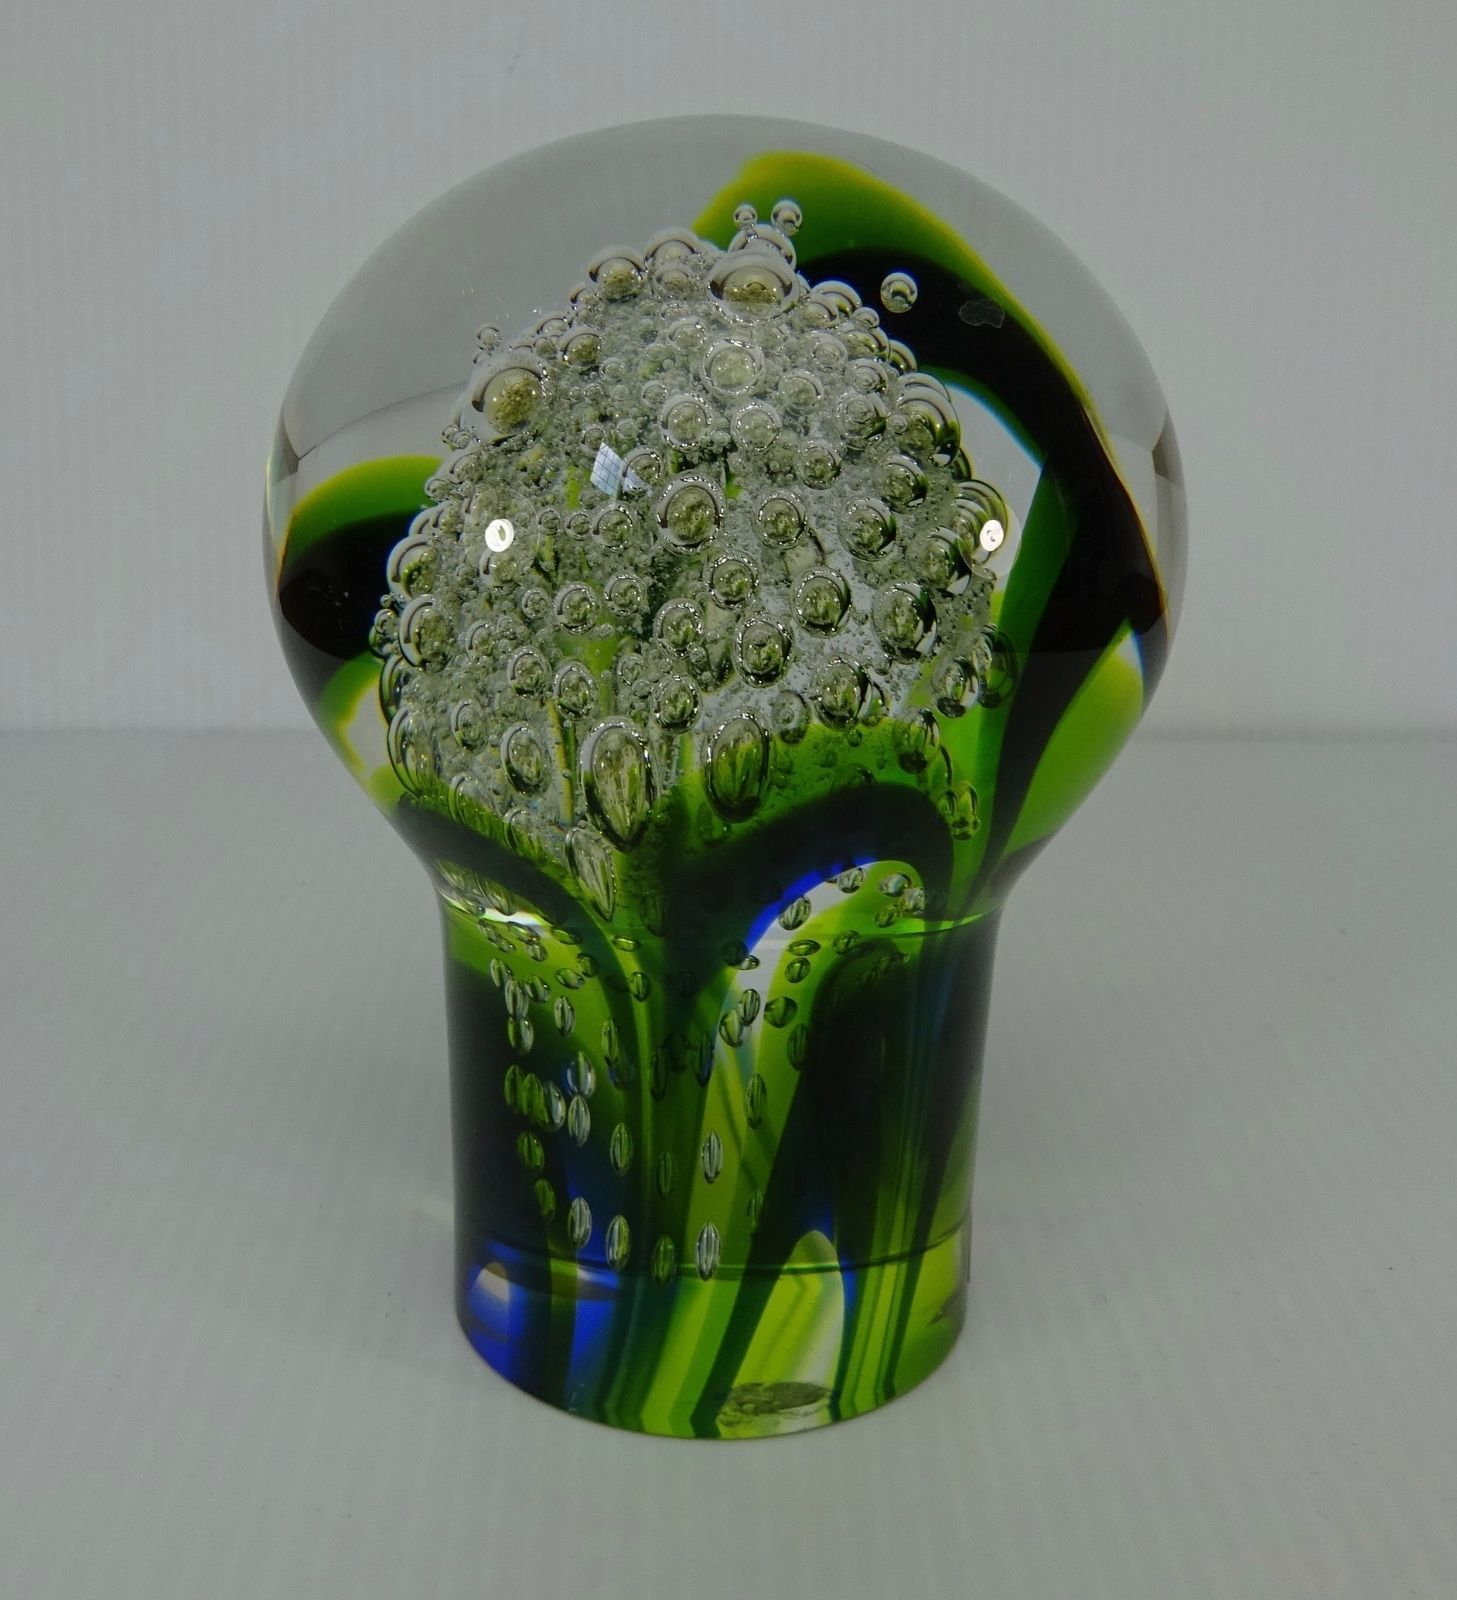 Kosta Boda 98580 G Warff Signed Crystal Sculpture 3 12 Tall Abstract Glass Paperweight Vintage Kosta Boda Twisted Glass Paperweight